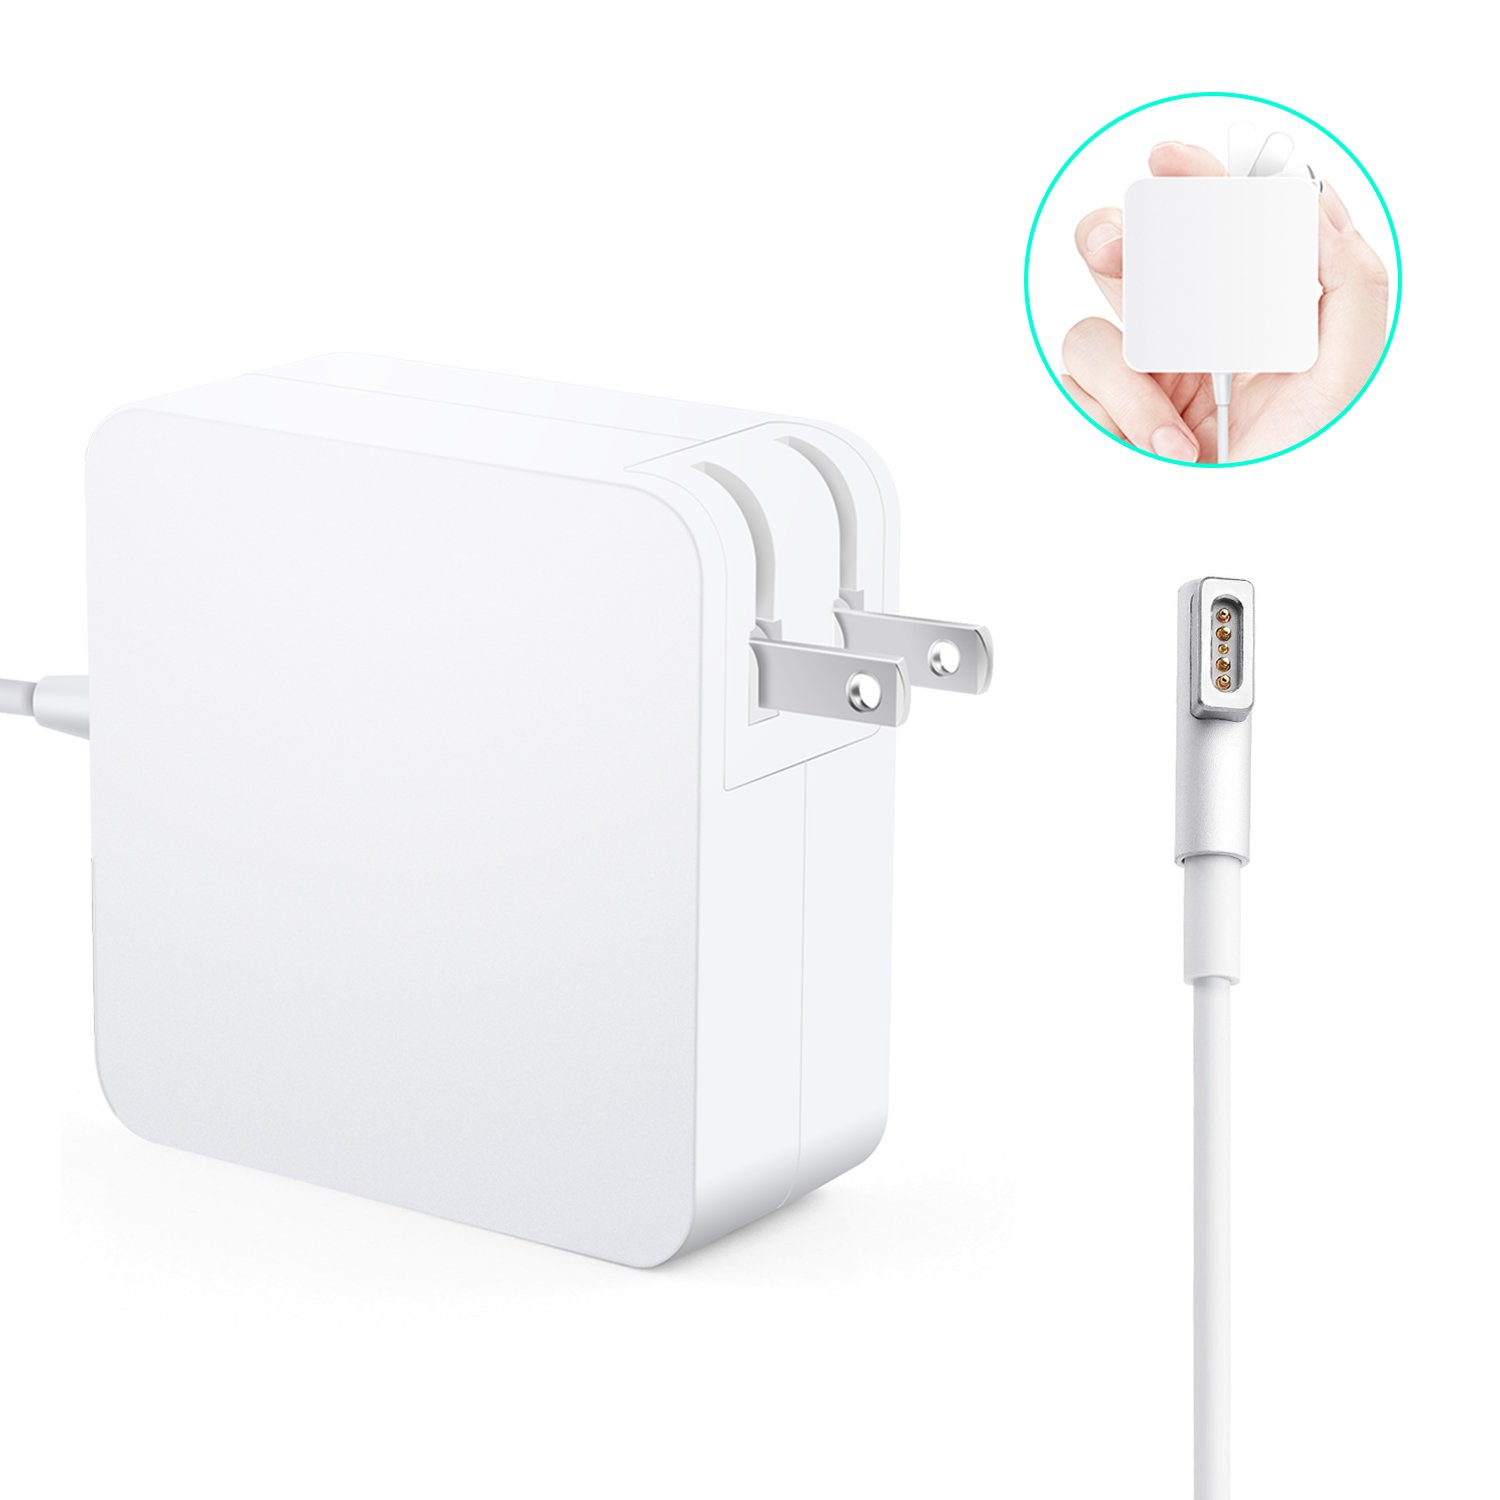 MacBook Pro Charger, Kakivan Mac Charger 85w Magsafe Power Adapter Cord with L-Tip, MacBook Charger 85w Replacement for MacBook Pro 15/17 Inch (Mid2012 Before) by Kakivan (Image #2)